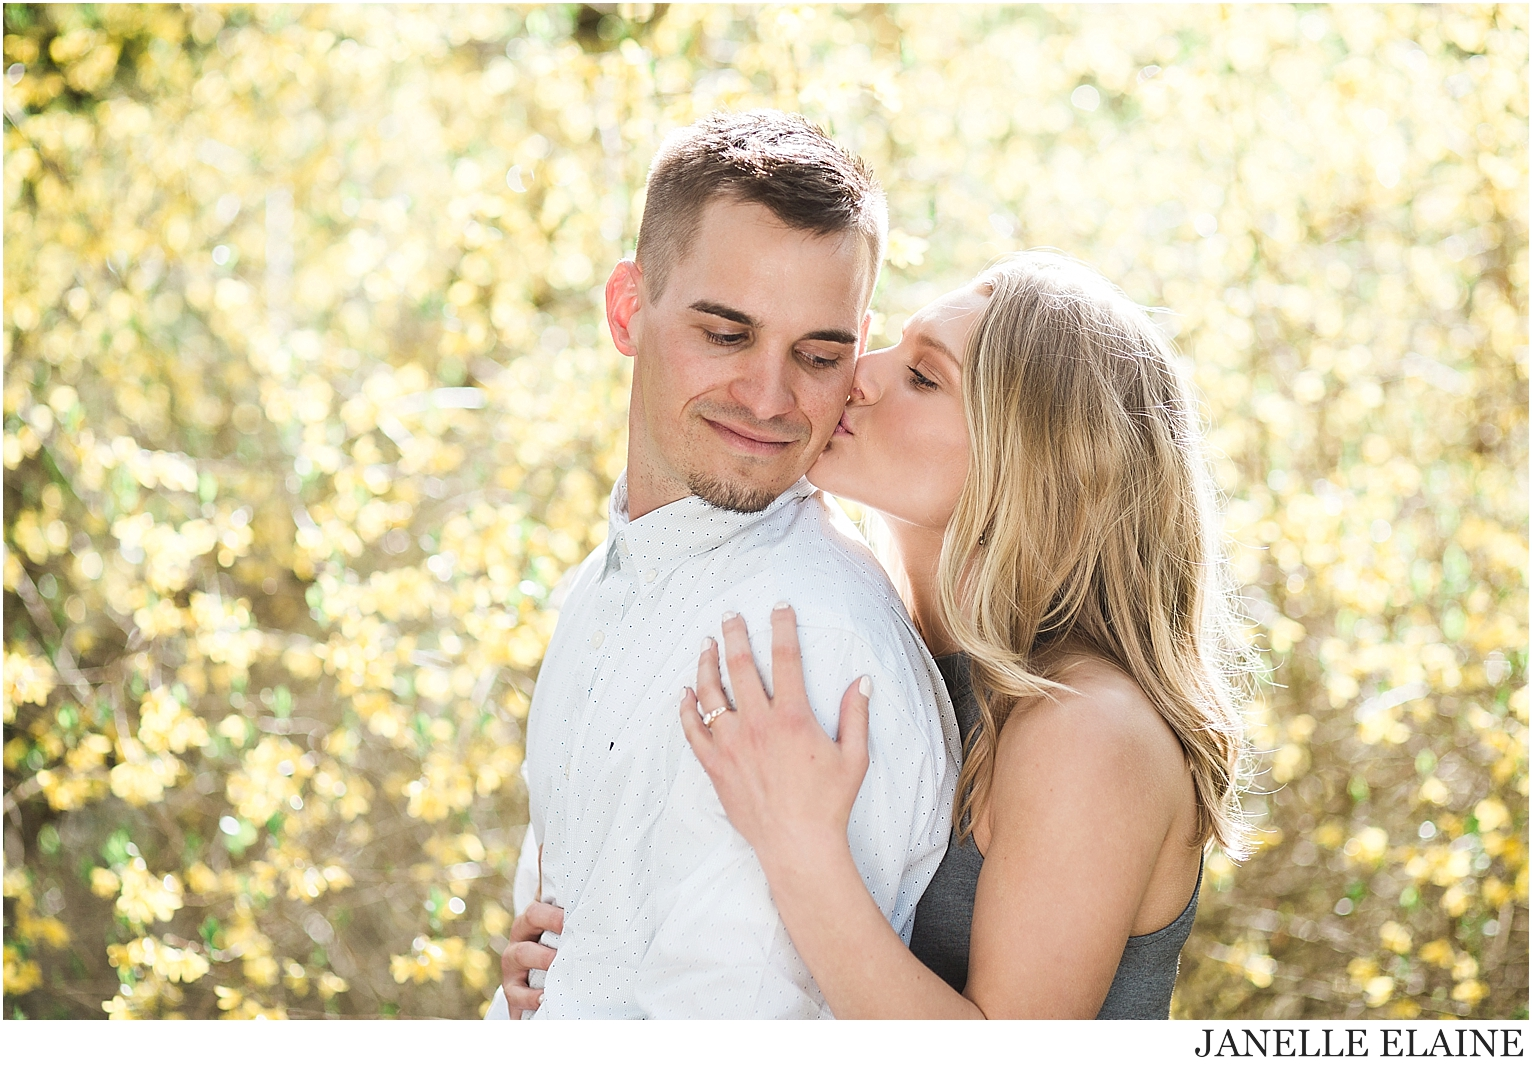 tricia and nate engagement photos-janelle elaine photography-85.jpg